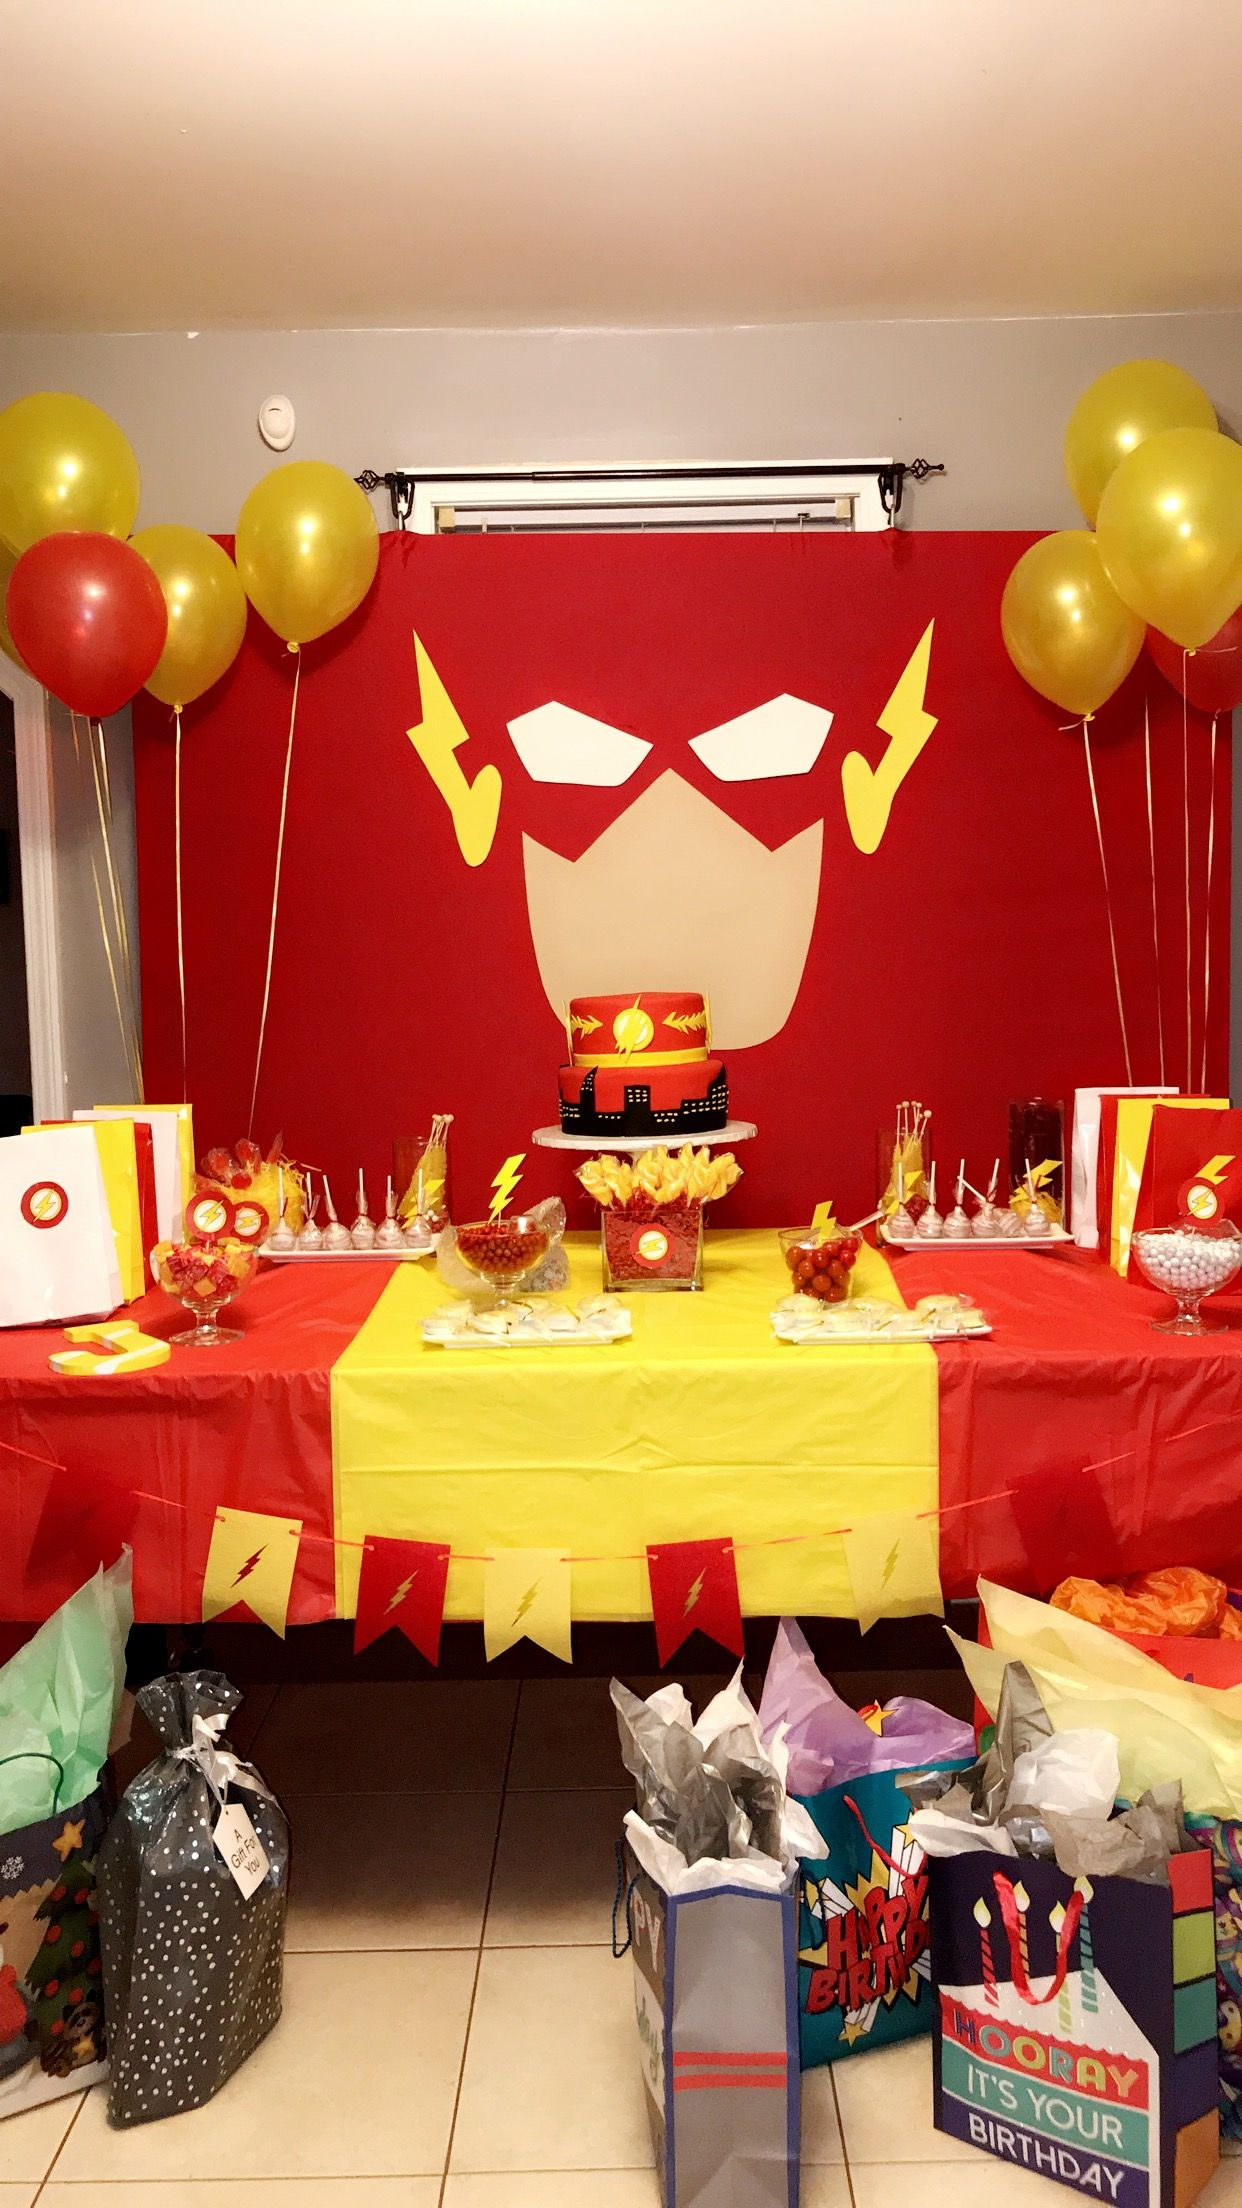 Tried To Re Create The Flash Birthday I Seen Here Before